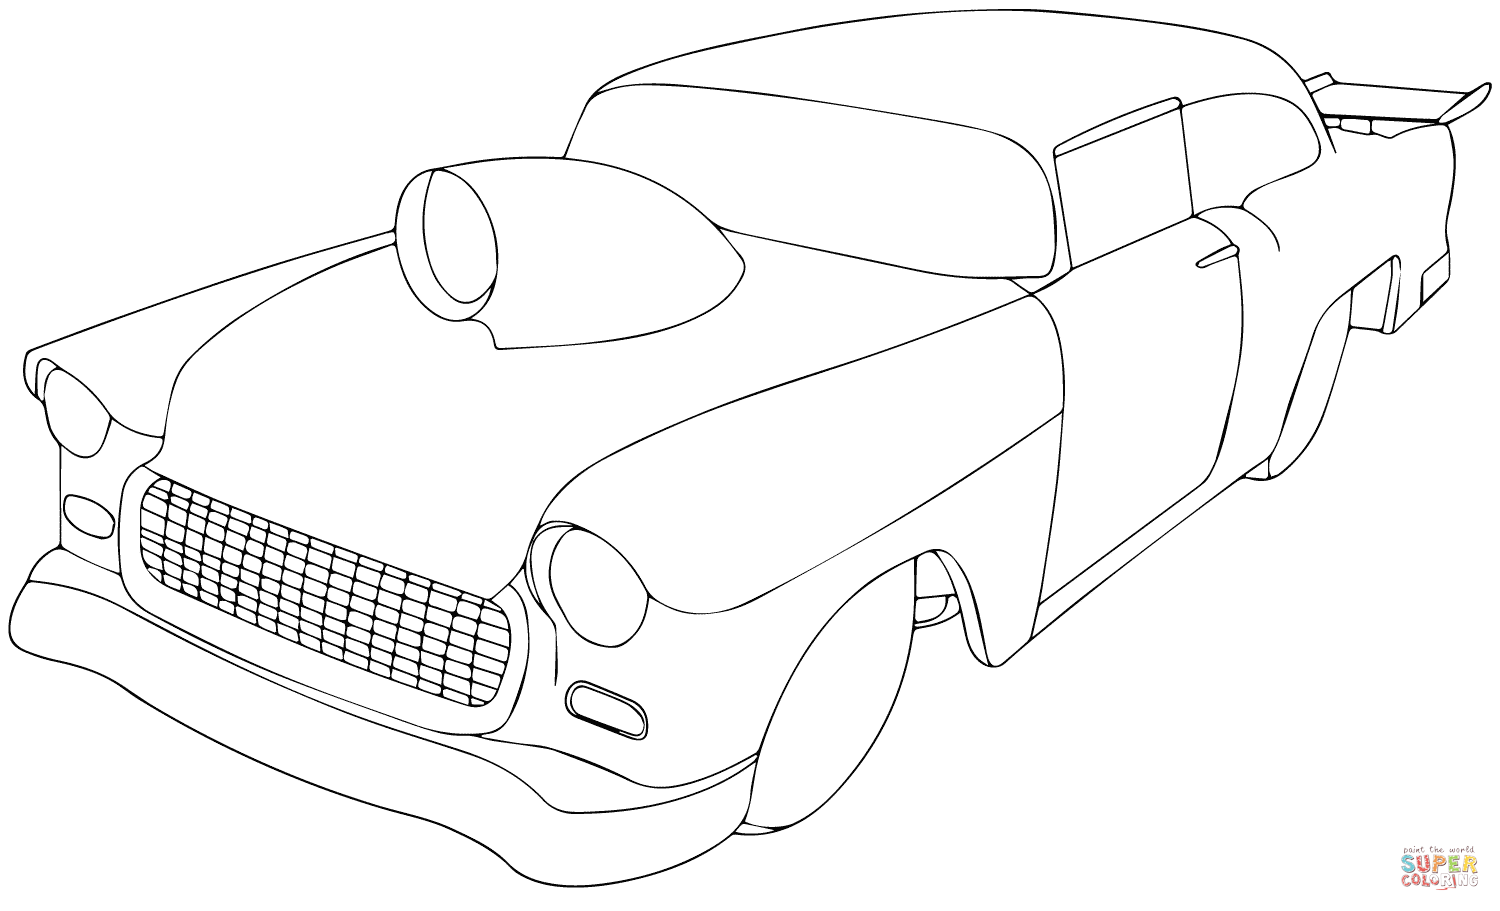 Chevy Logo Coloring Impala Pages Grig3org Sketch Coloring Page